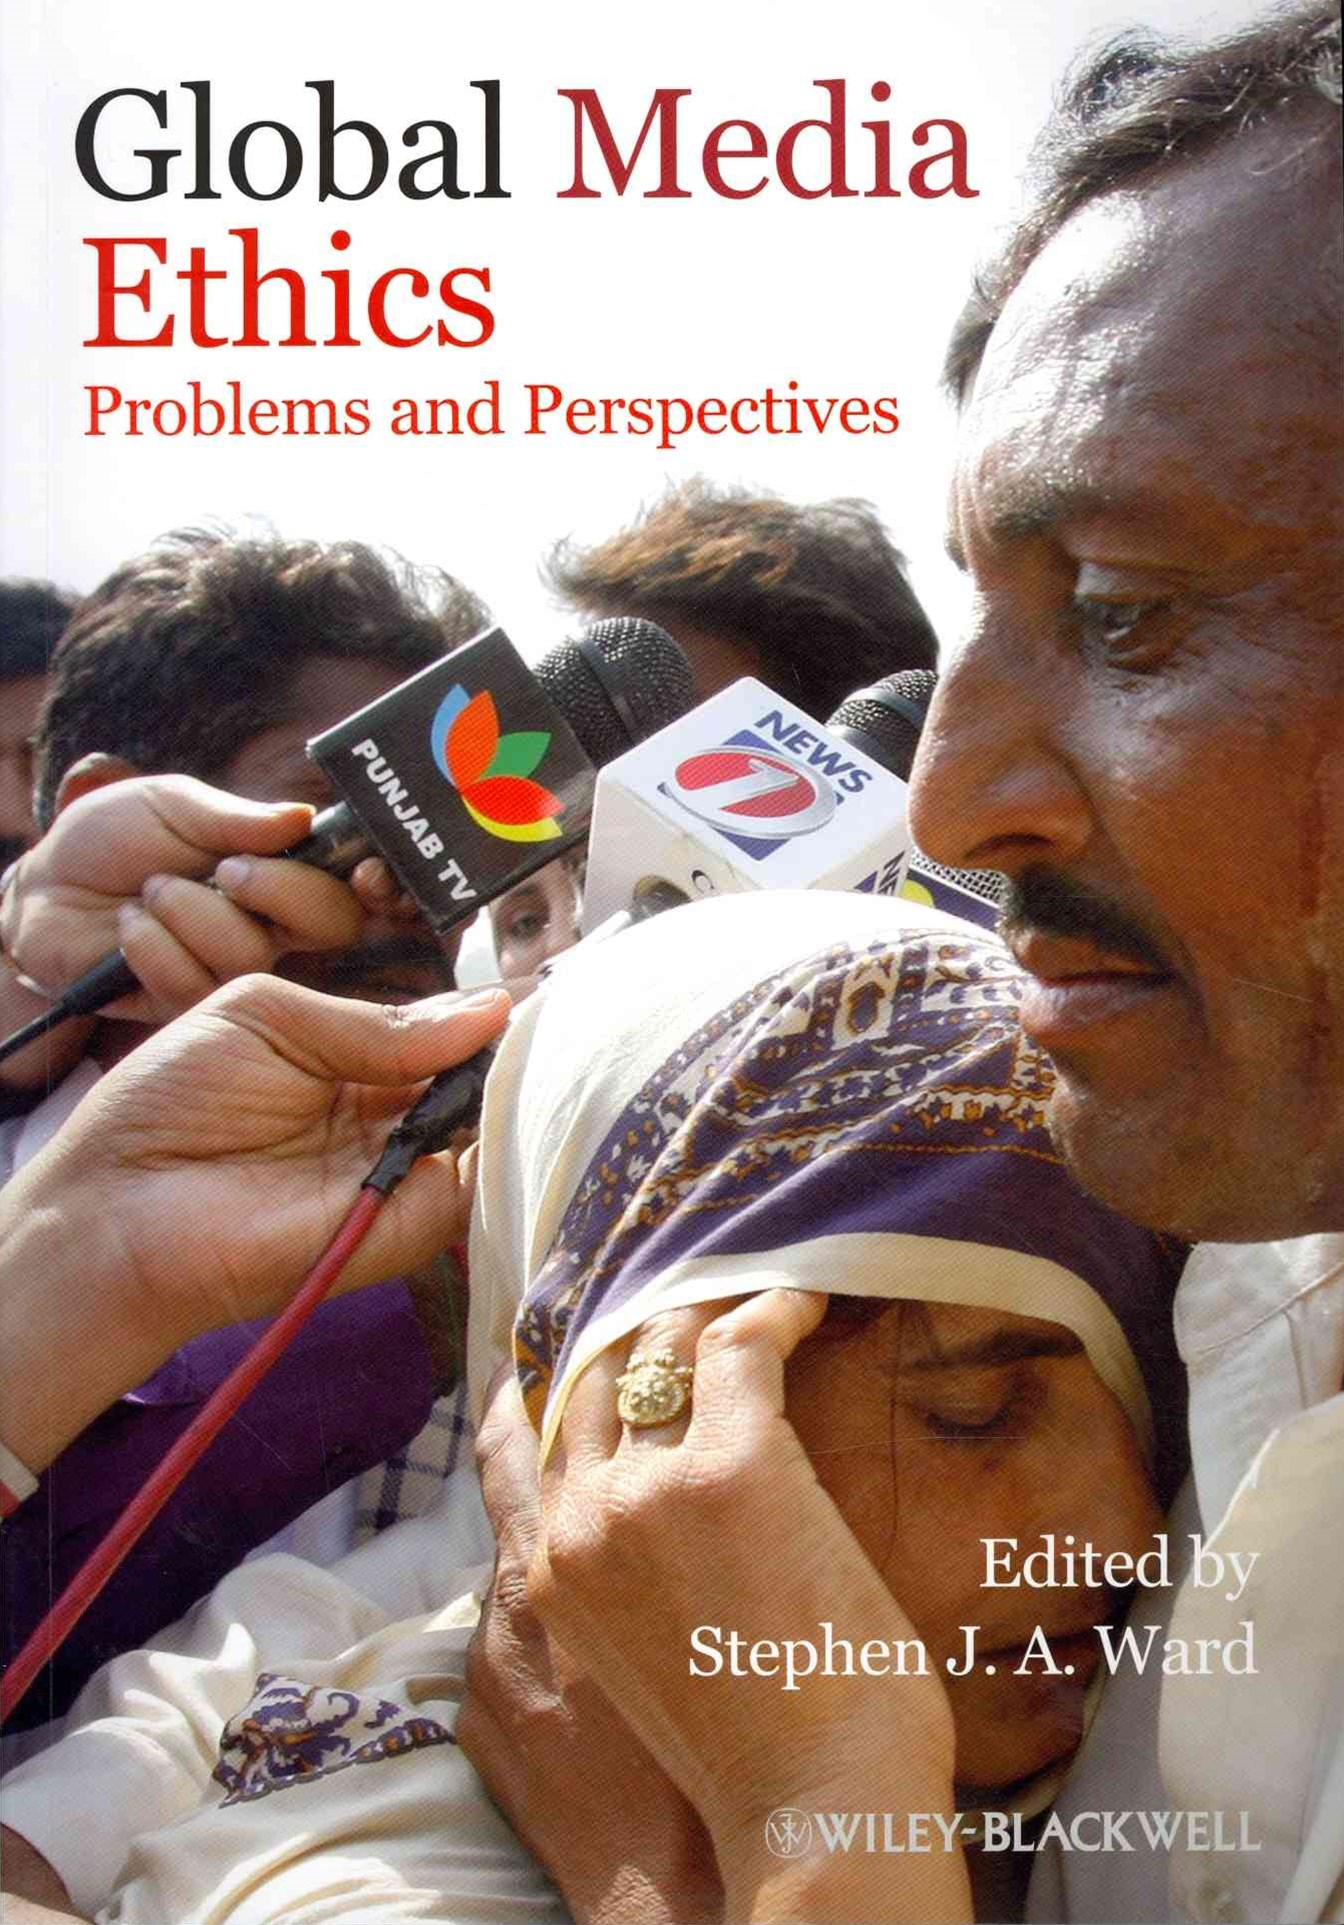 Global Media Ethics - Problems and Perspectives